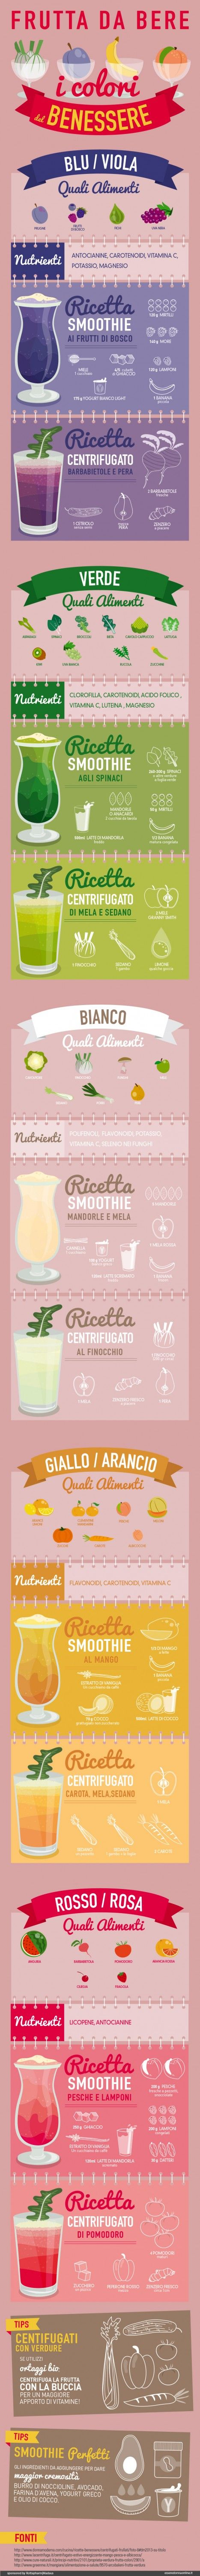 infographic: FRUTTA DA BERE -FRUIT DRINK - infographics designed for esseredonnaonline.it- illustrated by Alice Kle Borghi, kleland.com